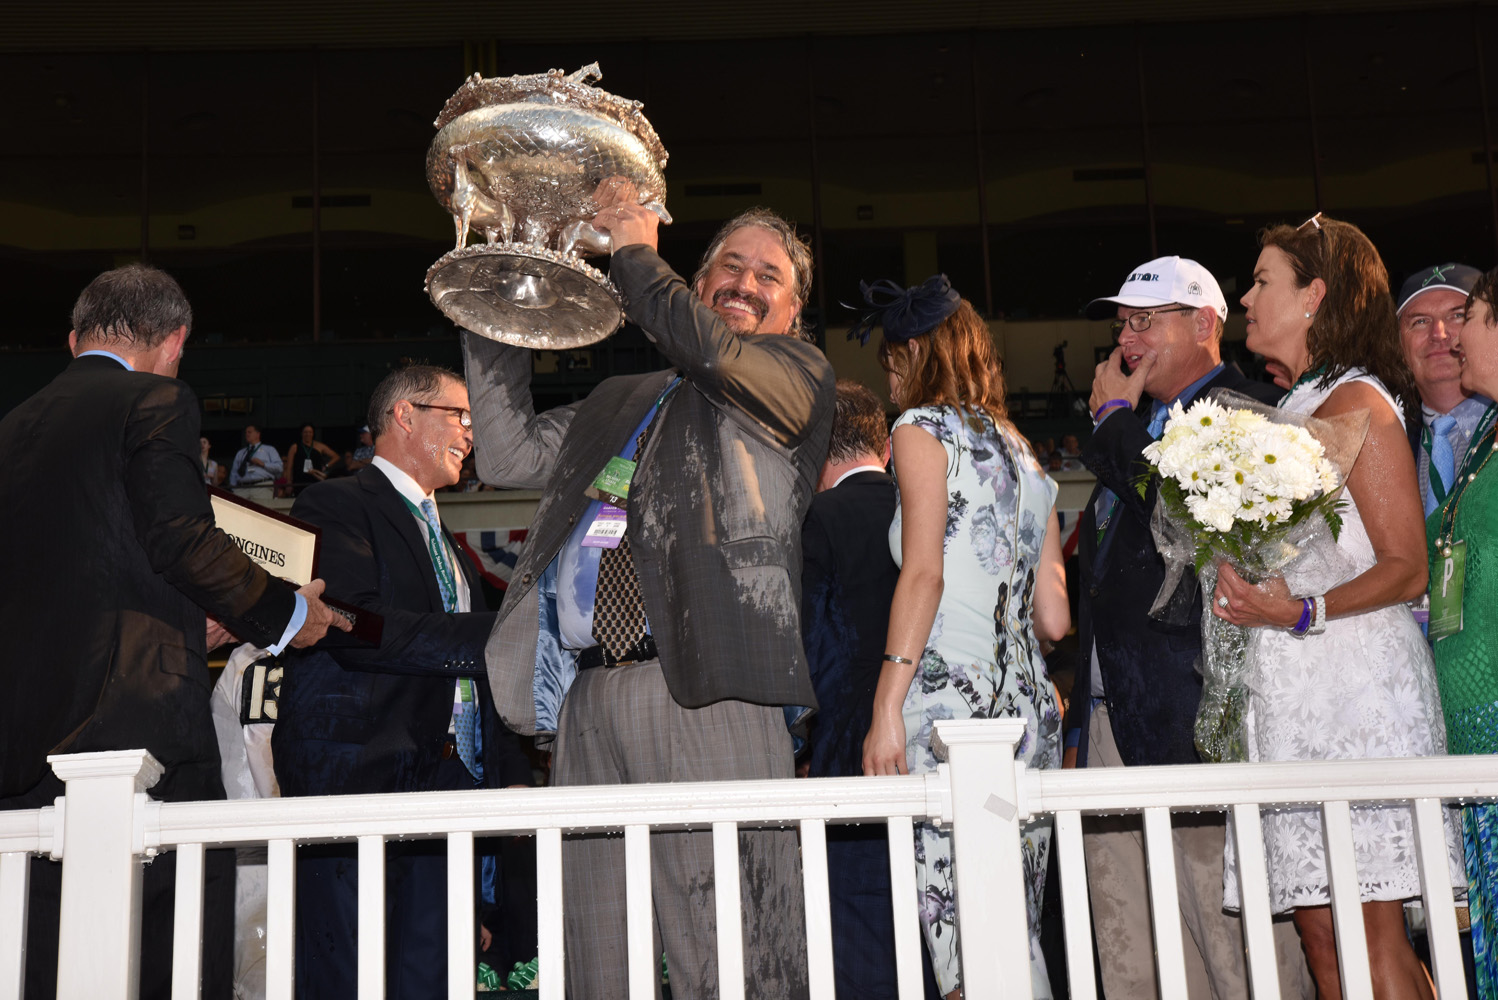 Steve Asmussen holds up the August Belmont Memorial Trophy after winning his first Belmont Stakes with Creator in 2016 (NYRA)